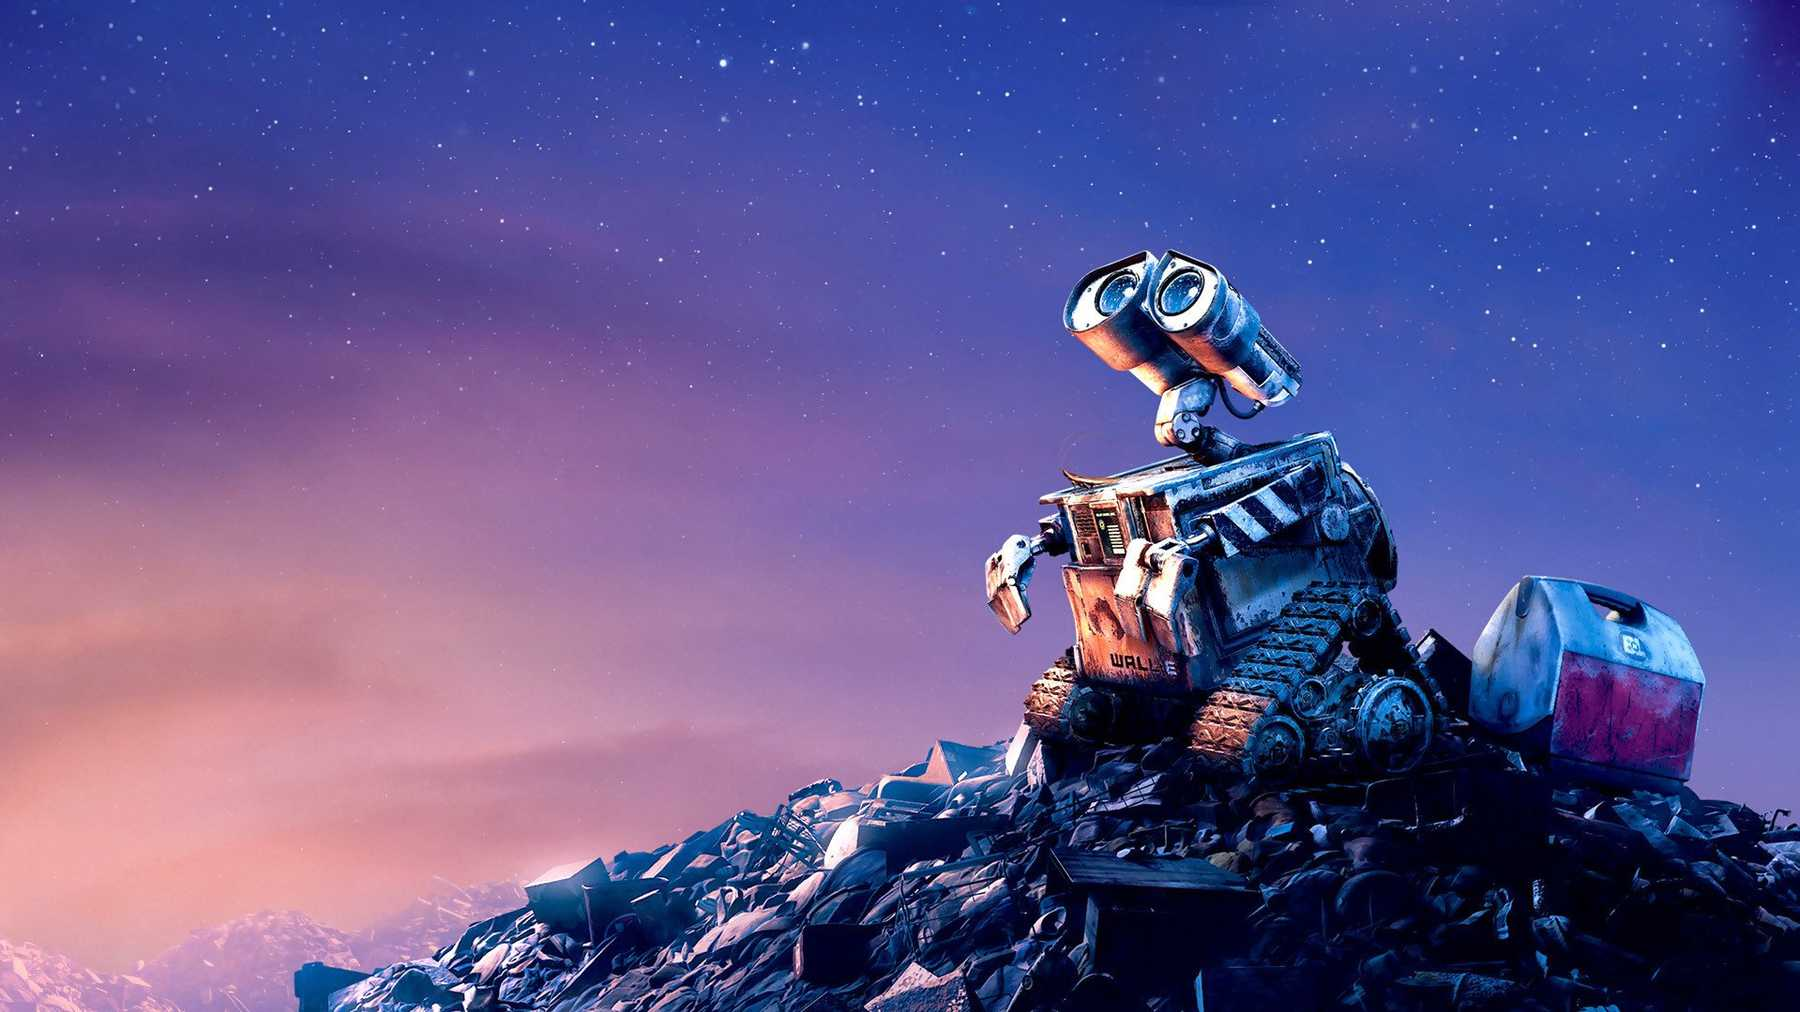 How Pixar Changed American Animated Storytelling Toy Story Monsters Inc. Up Moana Finding Nemo WALL-E Cars Brave